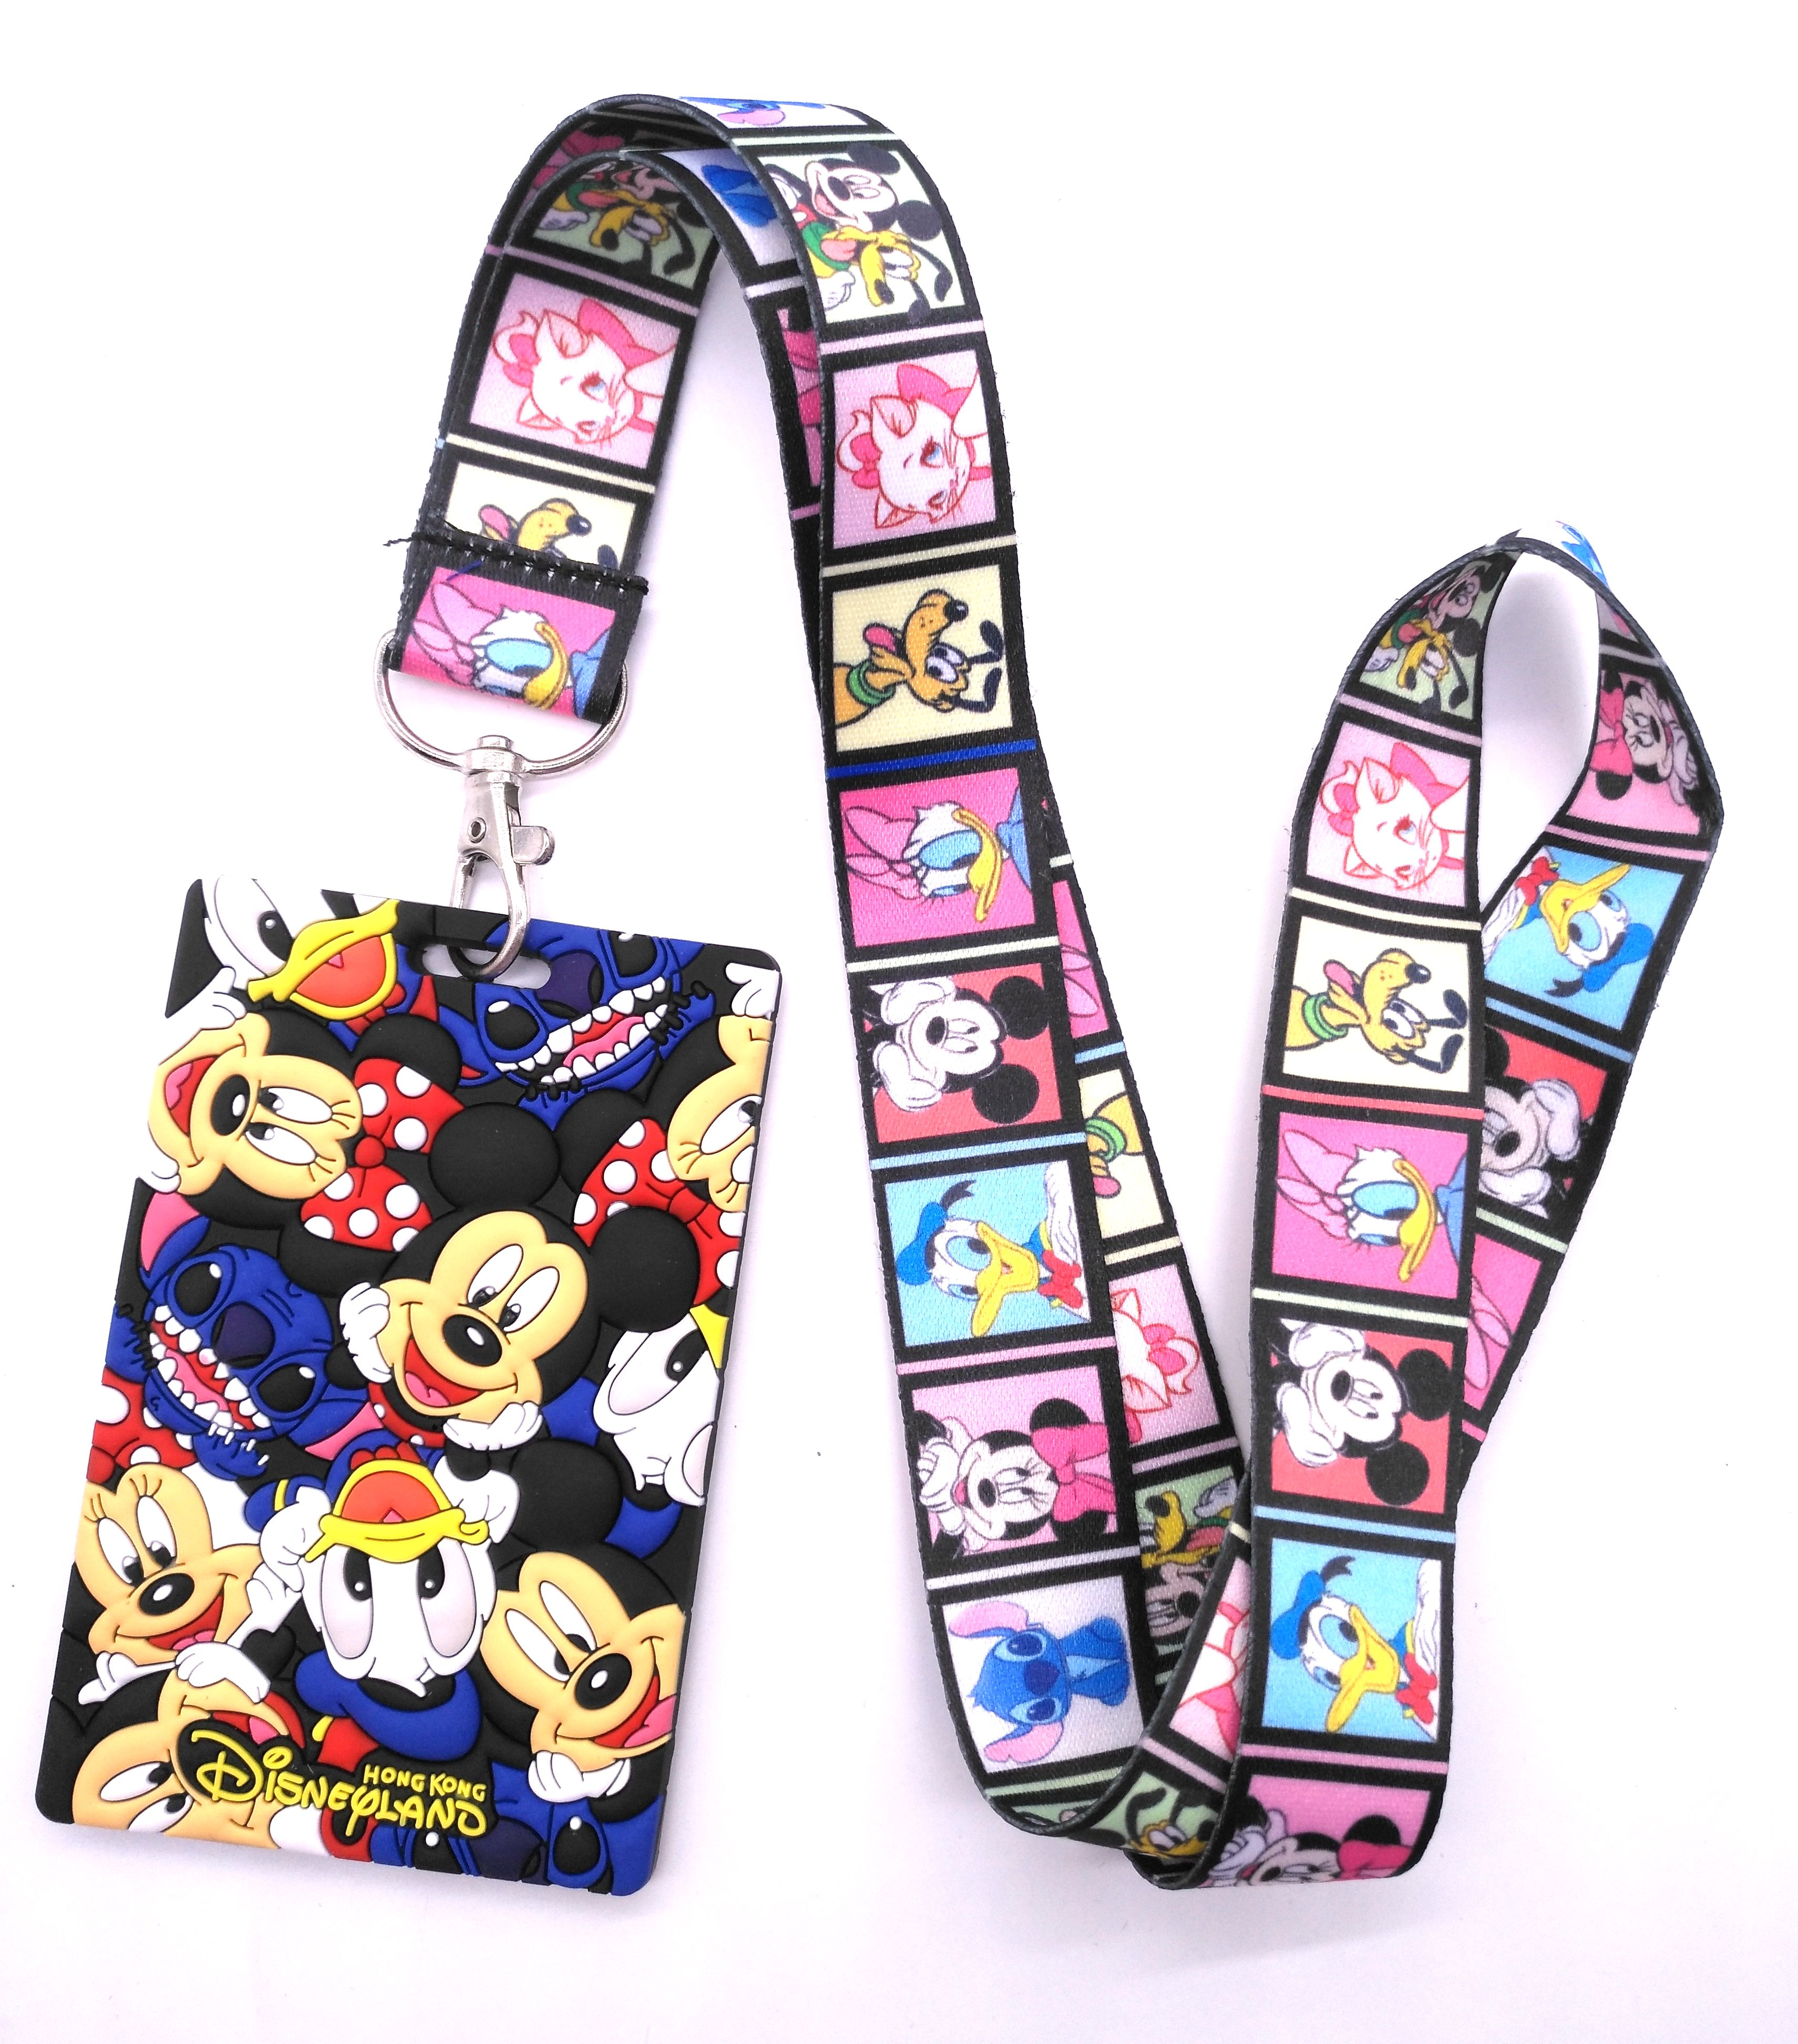 1 Pcs Cartoon Mickey Minnie Stitch Marie Cat Head   Lanyard Key Chains Card Holders Bank Card Neck Strap Card Bus ID Holders  V4